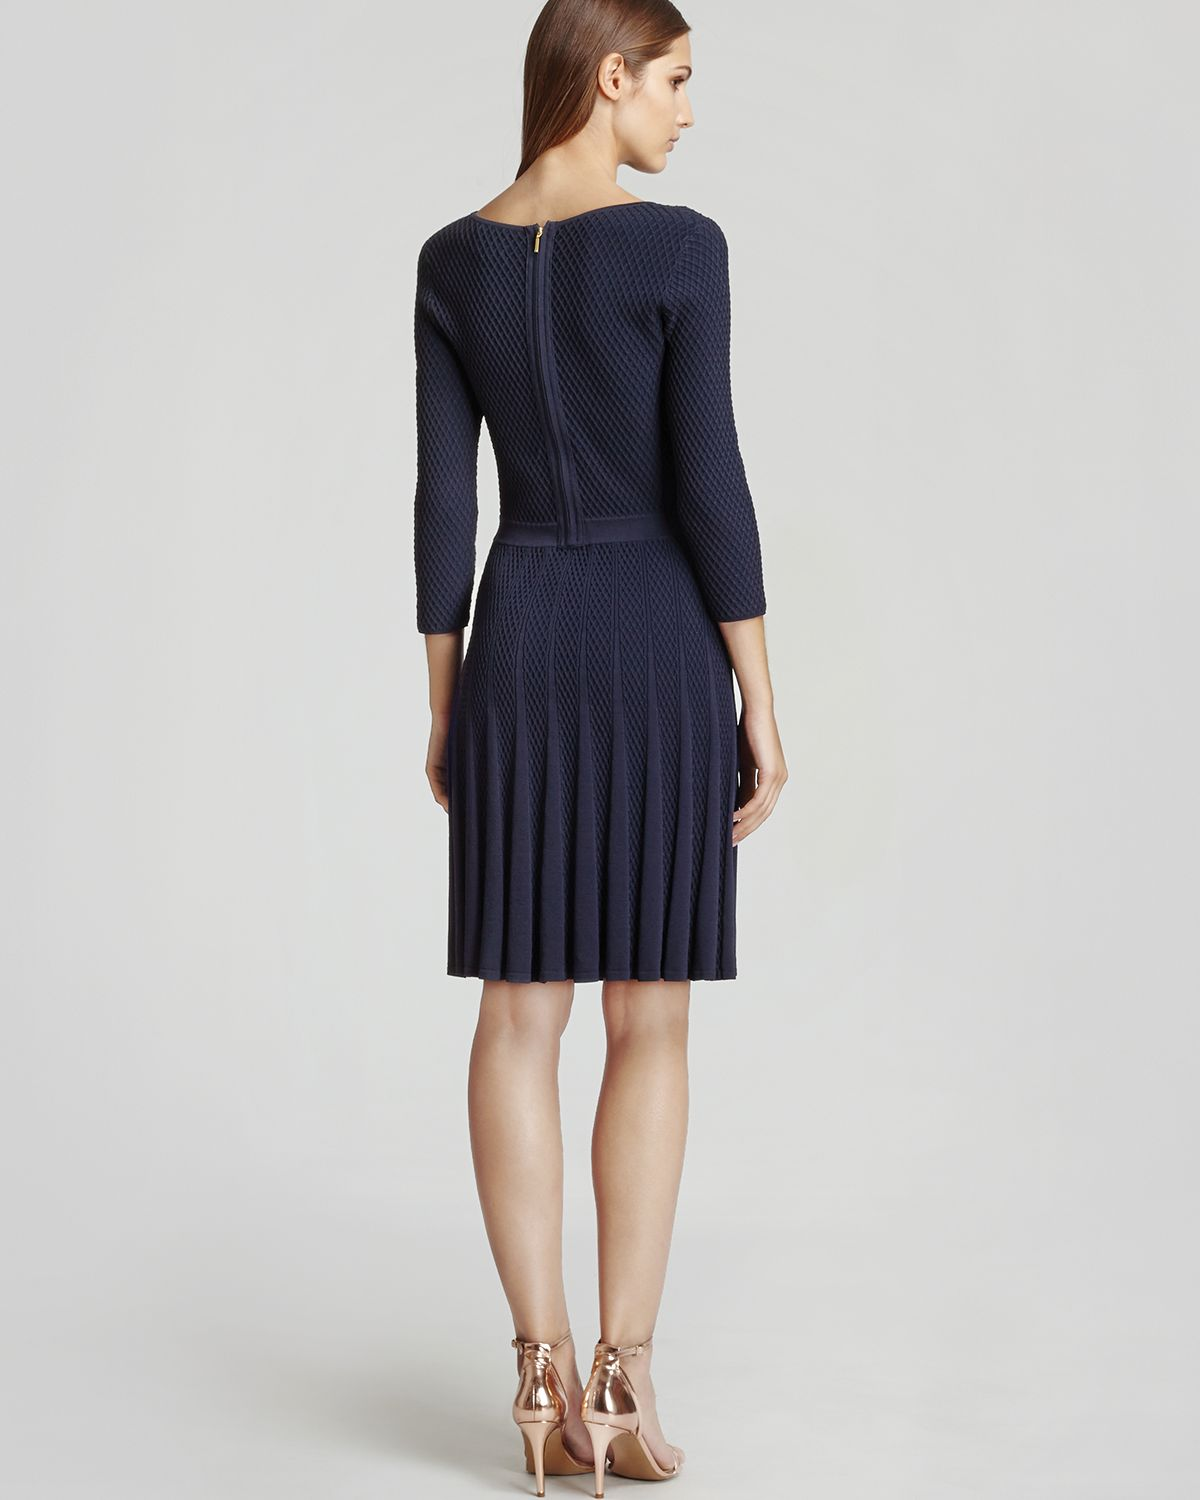 Buy second-hand Reiss clothing for women online on the Vestiaire Collective website.